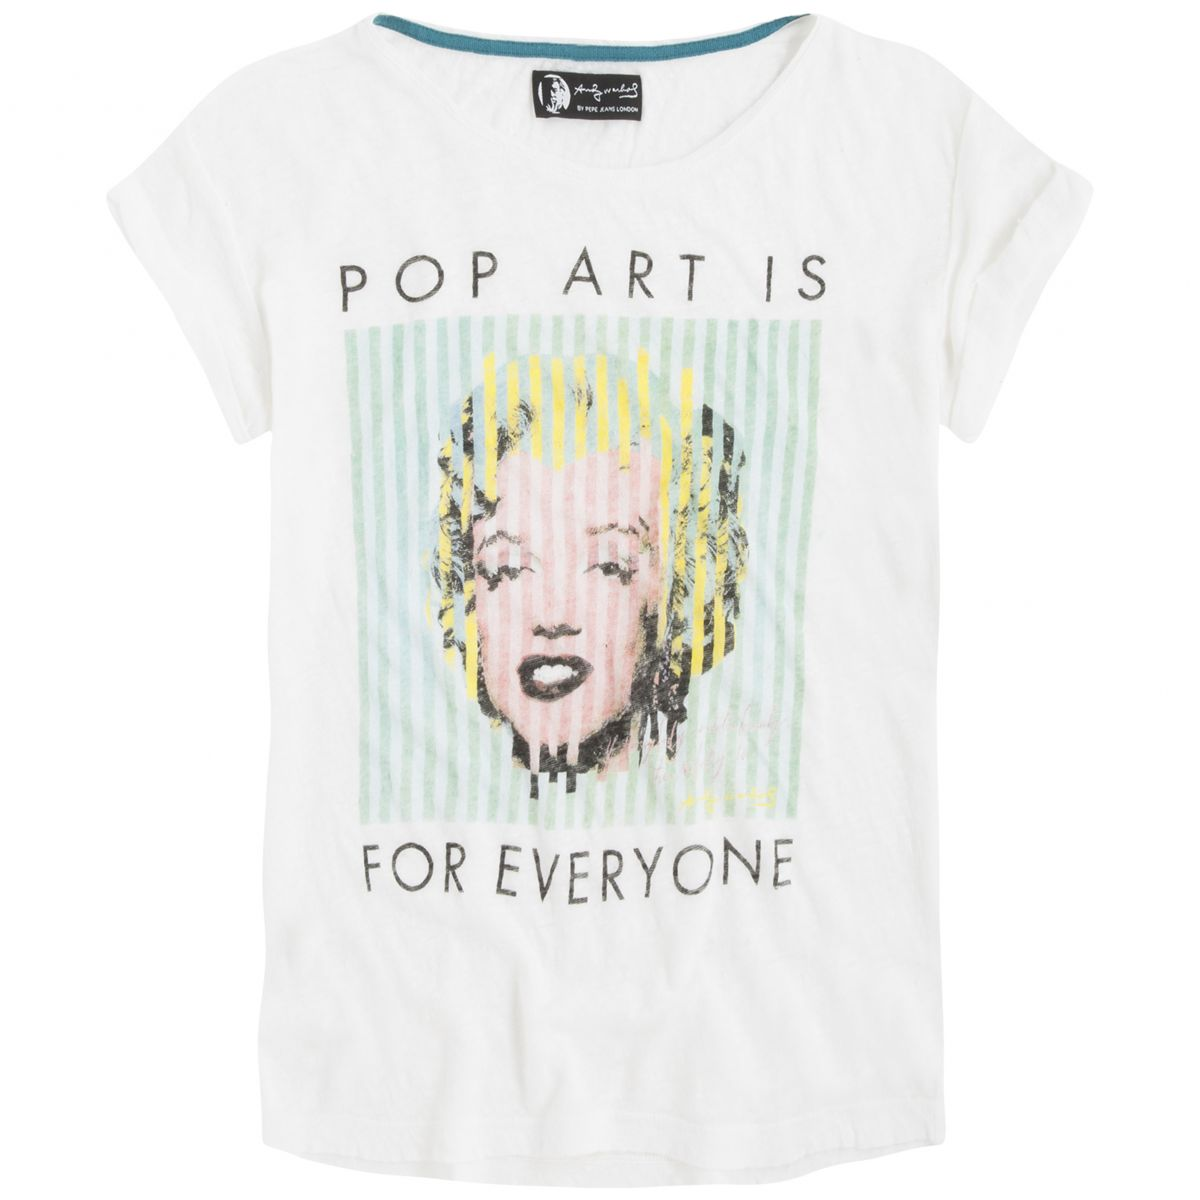 Andy Warhol by Pepe Jeans London